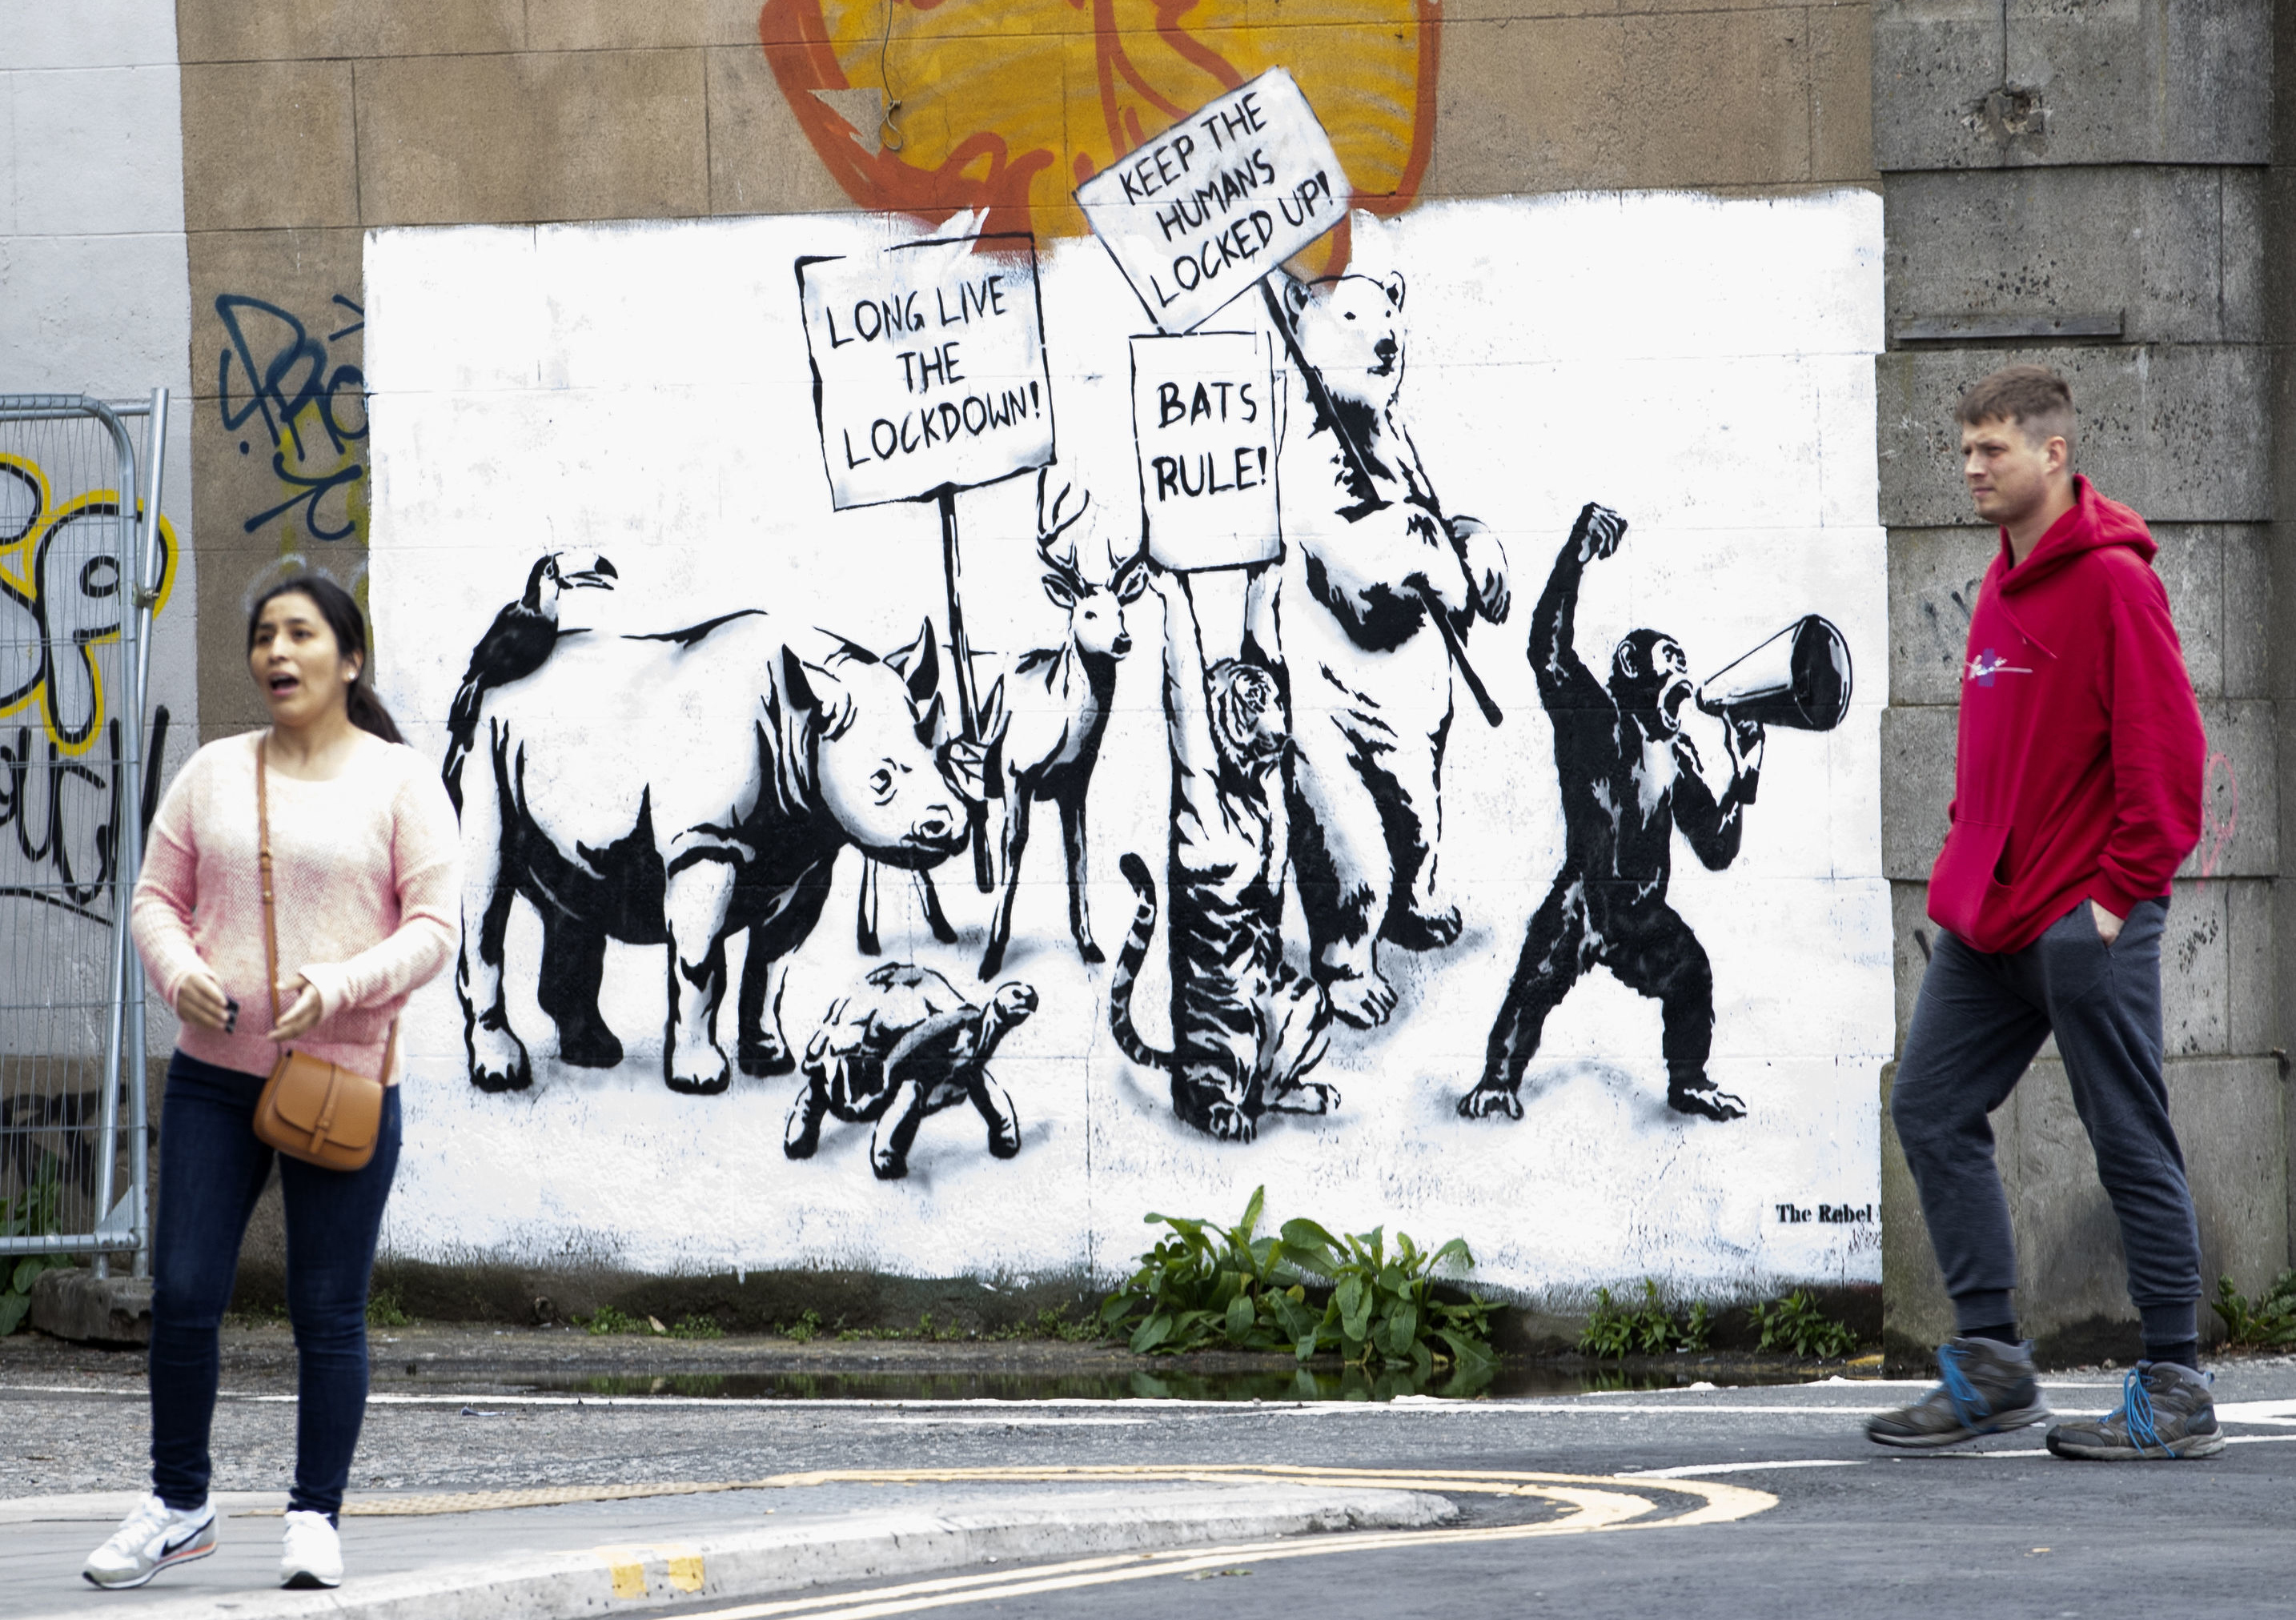 A new piece of street art by The Rebel Bear has appeared on a wall in Leith, Scotland, as Scotland is moving into phase one of the Scottish Government's plan for gradually lifting lockdown, Wednesday June 3, 2020. Scotland and Wales have developed separate procedures from England to gradually allow the lifting of lockdown restrictions because of the COVID-19 coronavirus.  (Jane Barlow/PA via AP)